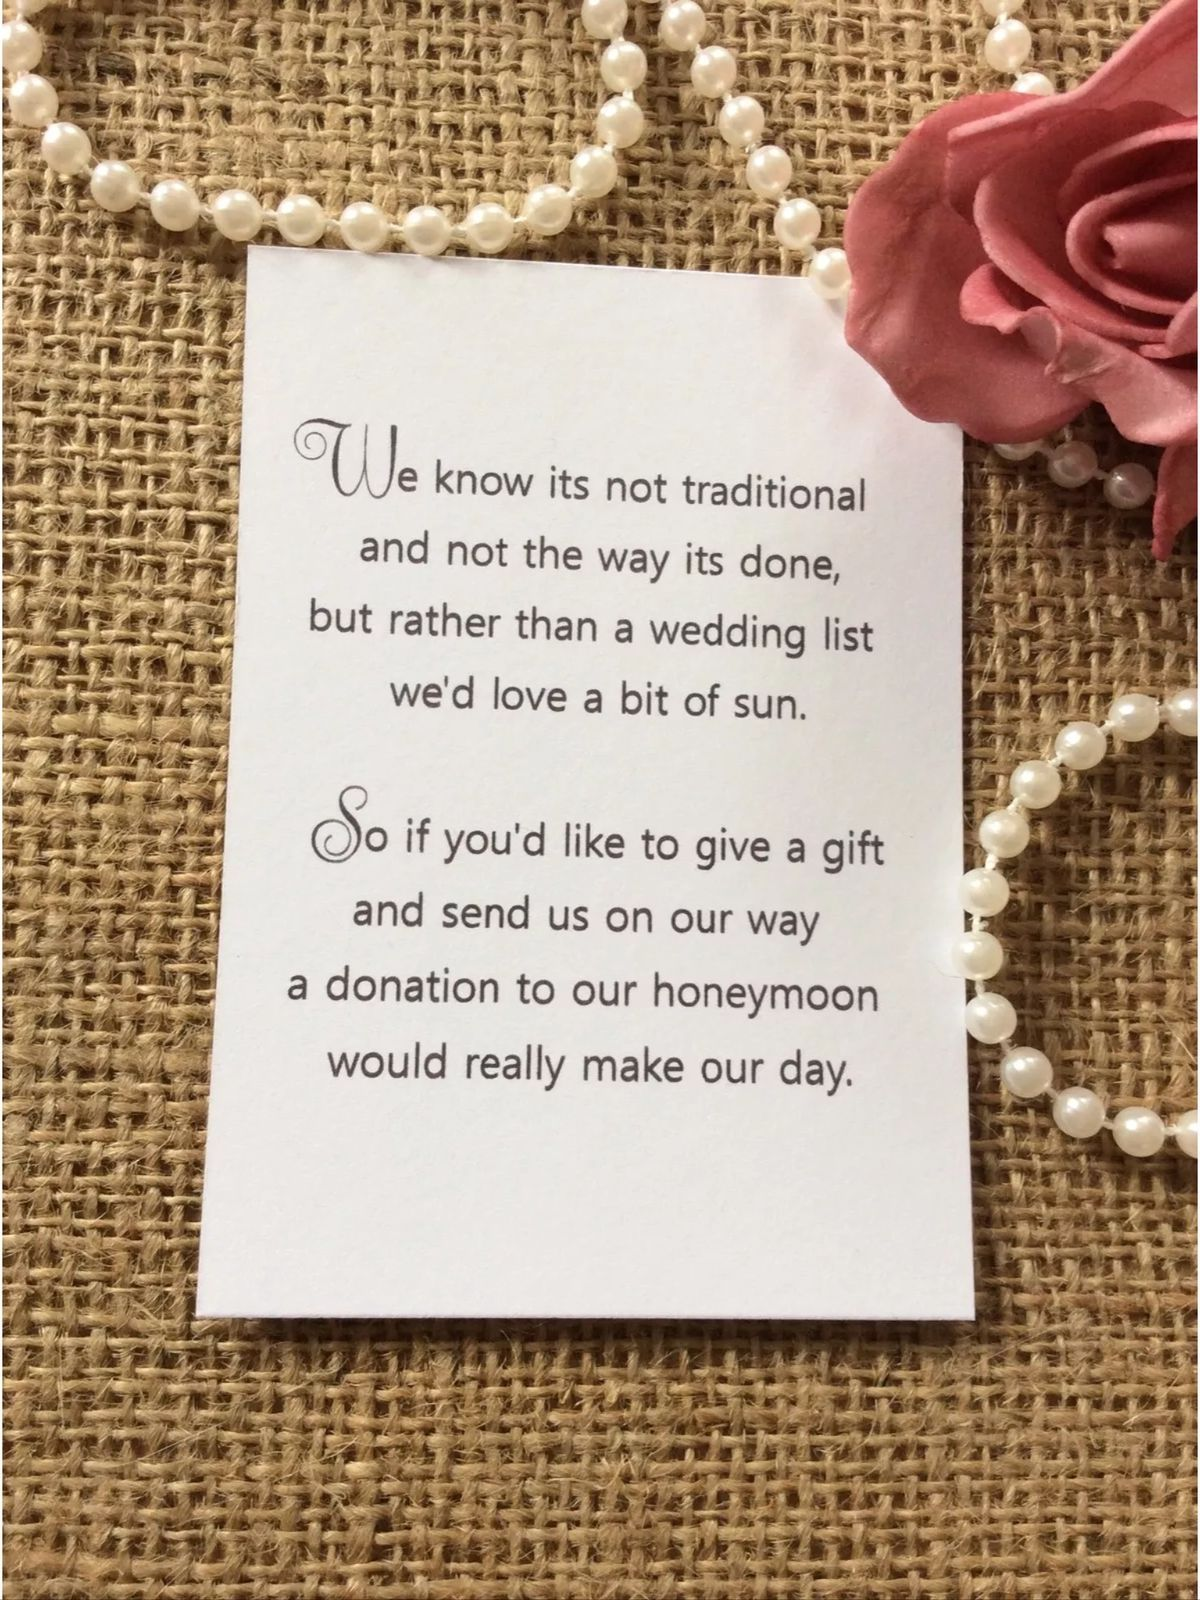 Cash For Wedding Gift Poems : 25 /50 WEDDING GIFT MONEY POEM SMALL CARDS ASKING FOR MONEY CASH FOR ...